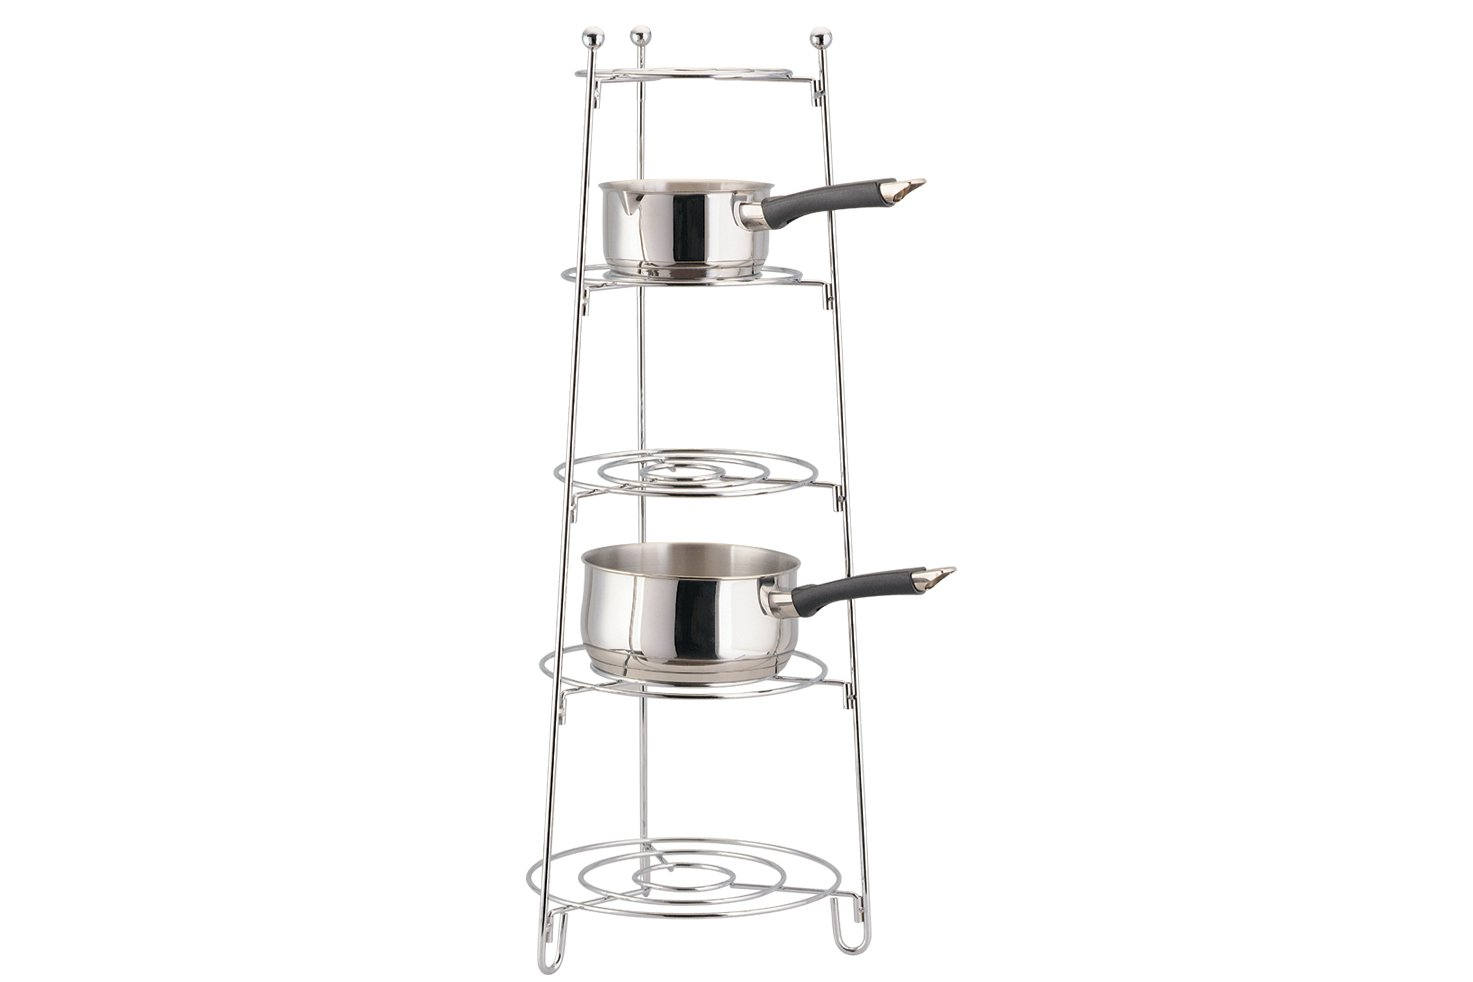 Apollo 28 x 28 x 80 cm 5-Tier Saucepan Stand, Chrome 1206